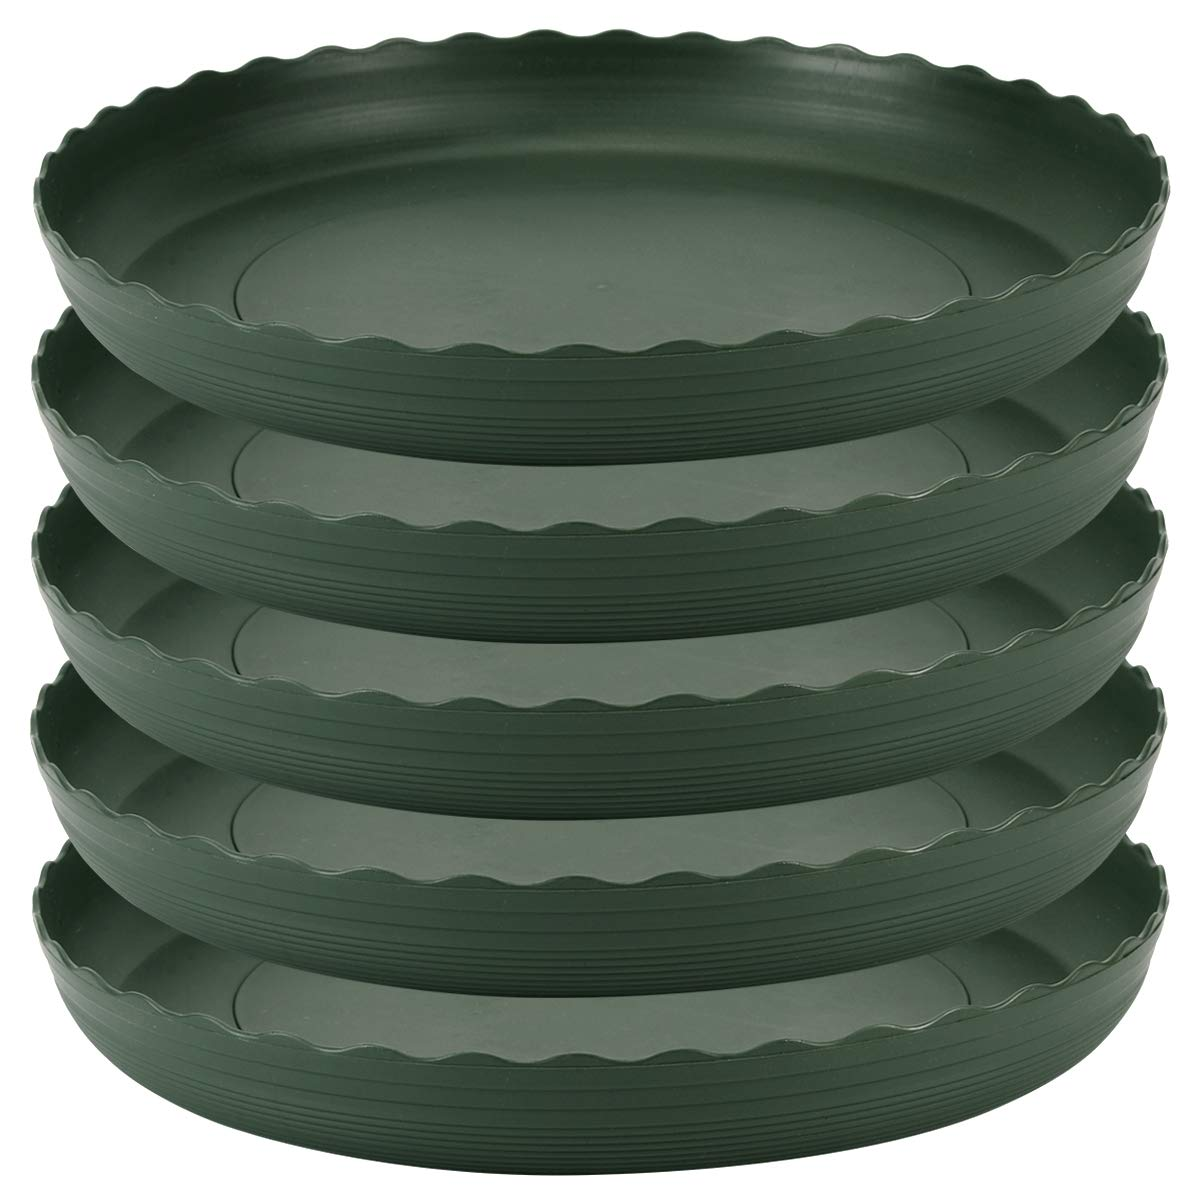 Plant Saucer 10 inch Drip Trays Green Plastic Tray Saucers Indoor Outdoor Flower Pot Round (10 in x 5 Pack) by TITE